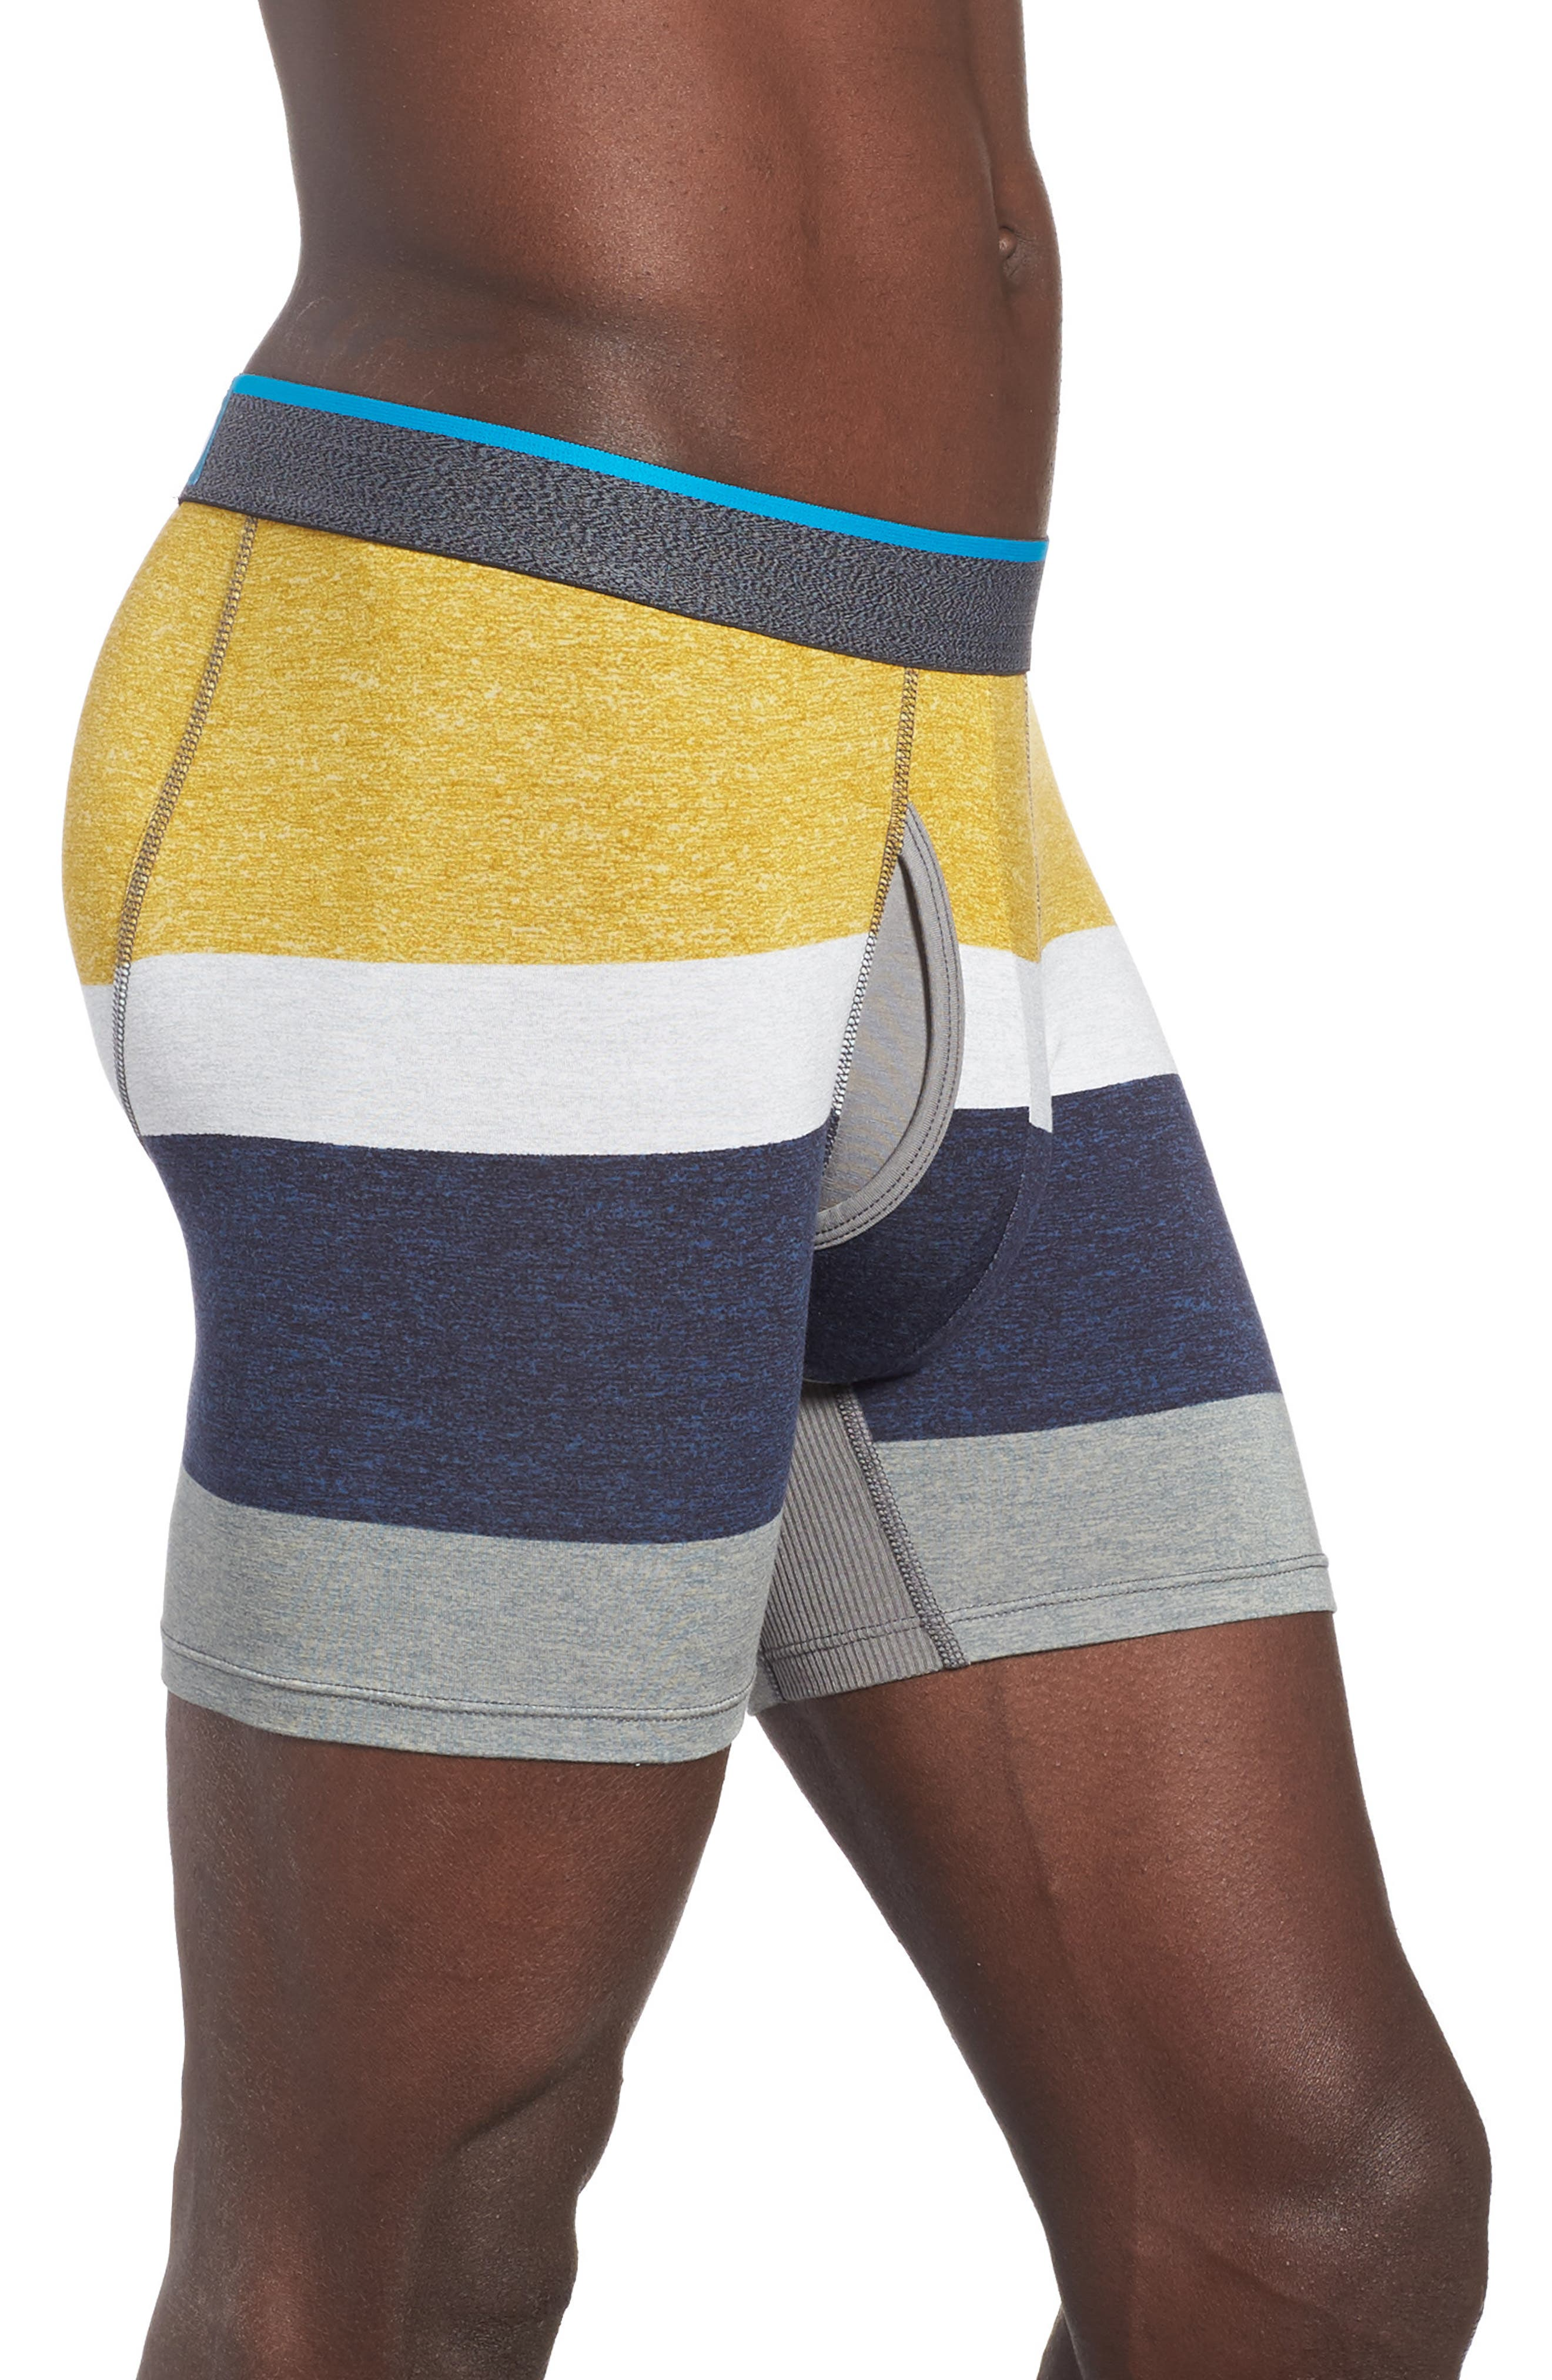 Norm Colorblock Boxer Briefs,                             Alternate thumbnail 3, color,                             Medium Grey